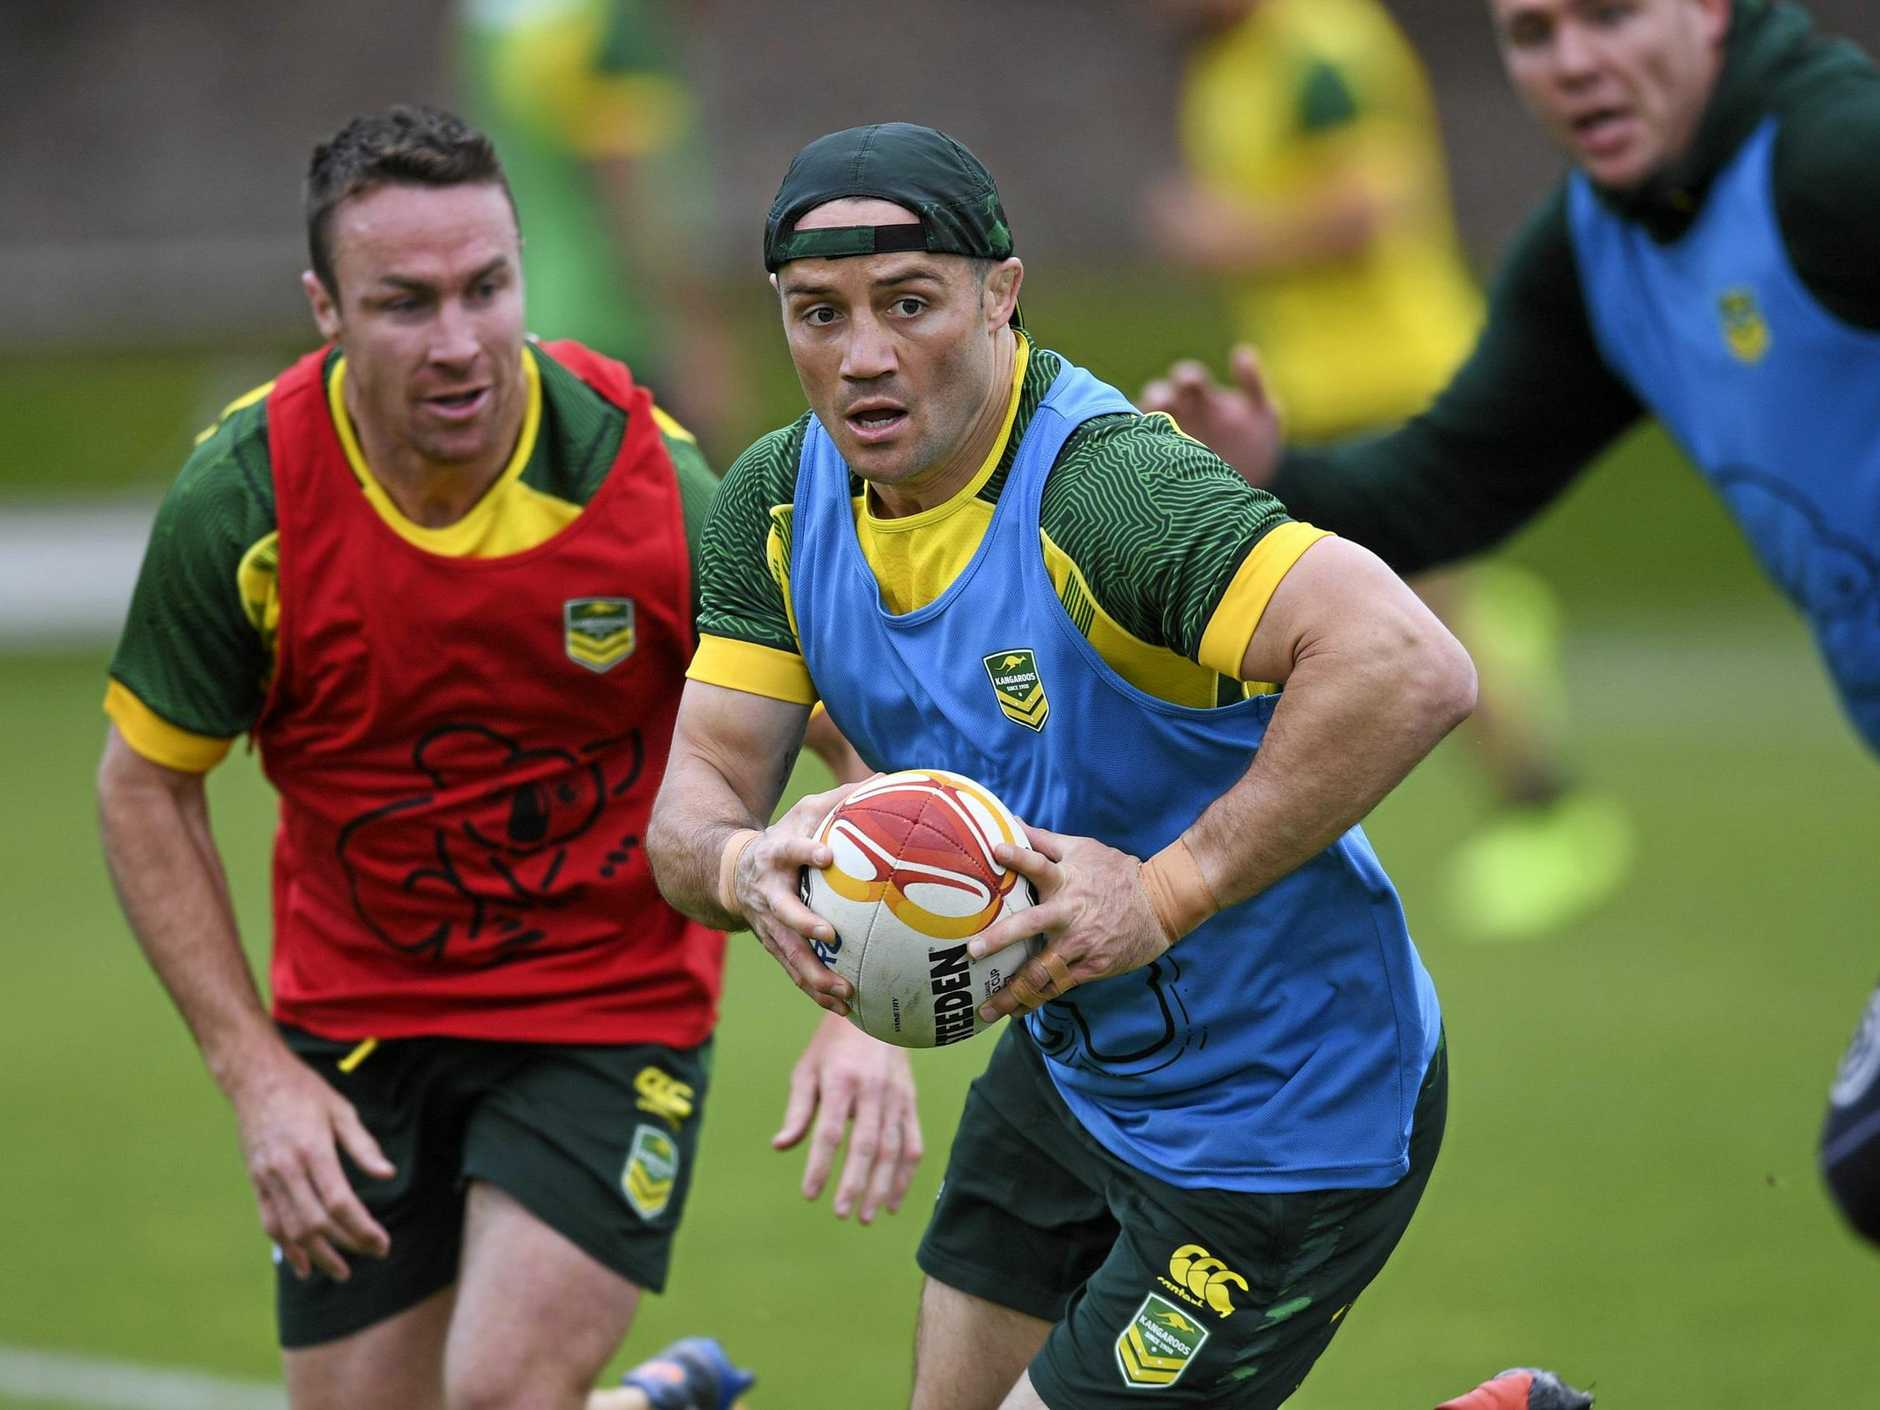 Cooper Cronk of the Kangaroos in action during a training session at the Australian Institute of Sport in Canberra, Tuesday, October 31, 2017. (AAP Image/Lukas Coch) NO ARCHIVING, EDITORIAL USE ONLY